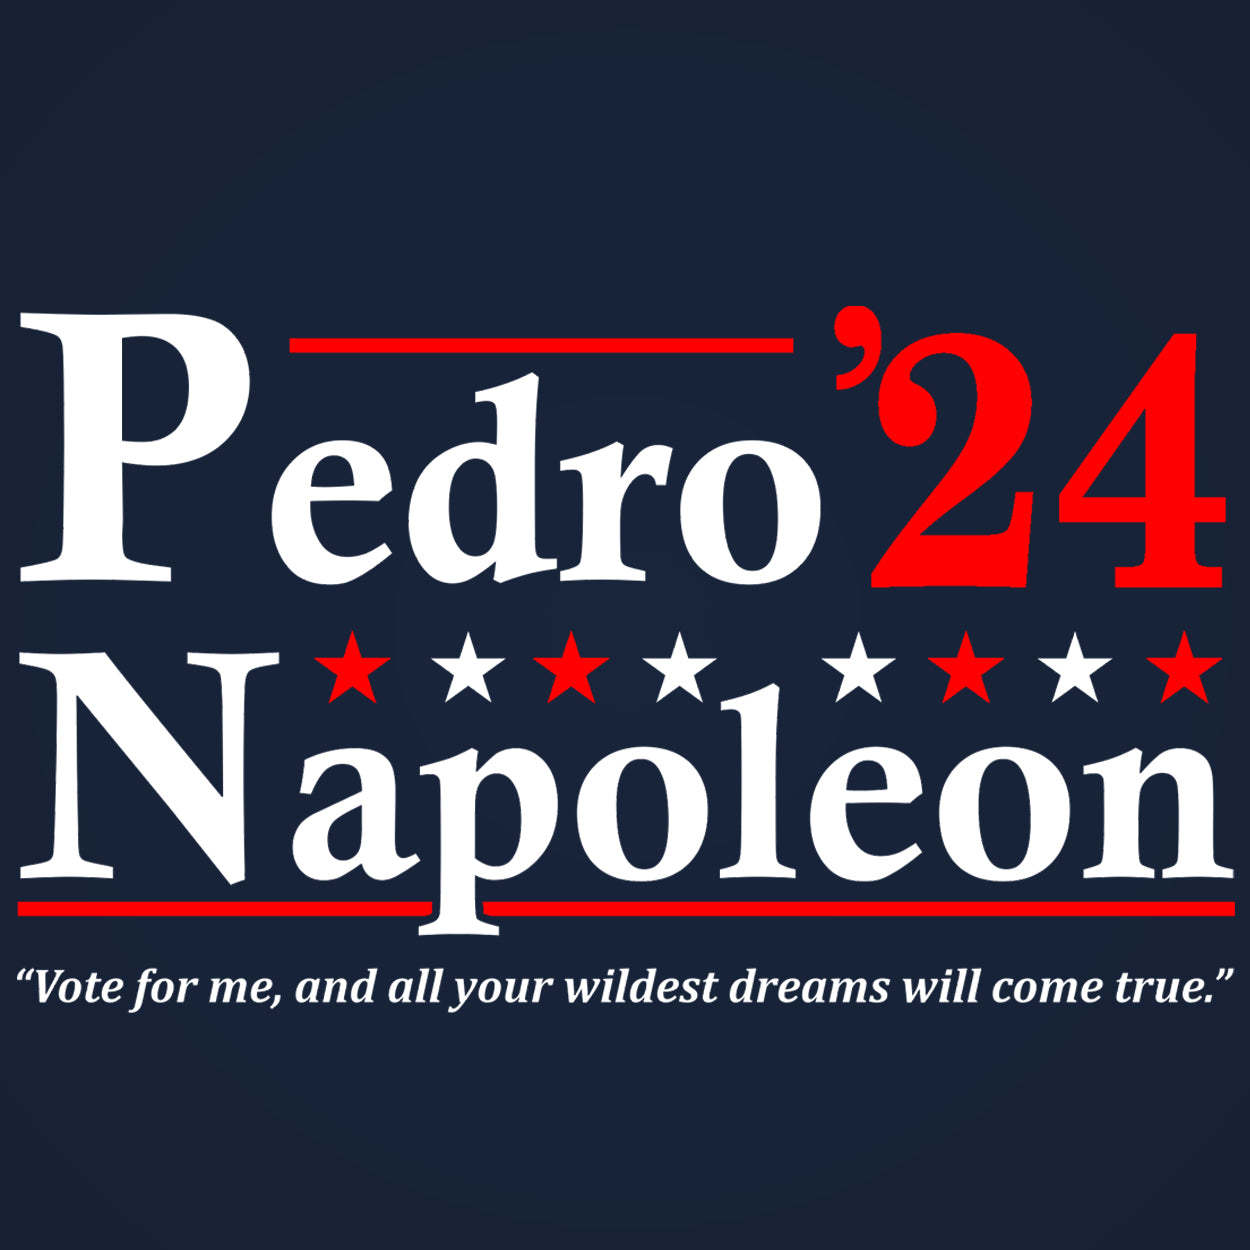 Pedro Napoleon 2024 Election